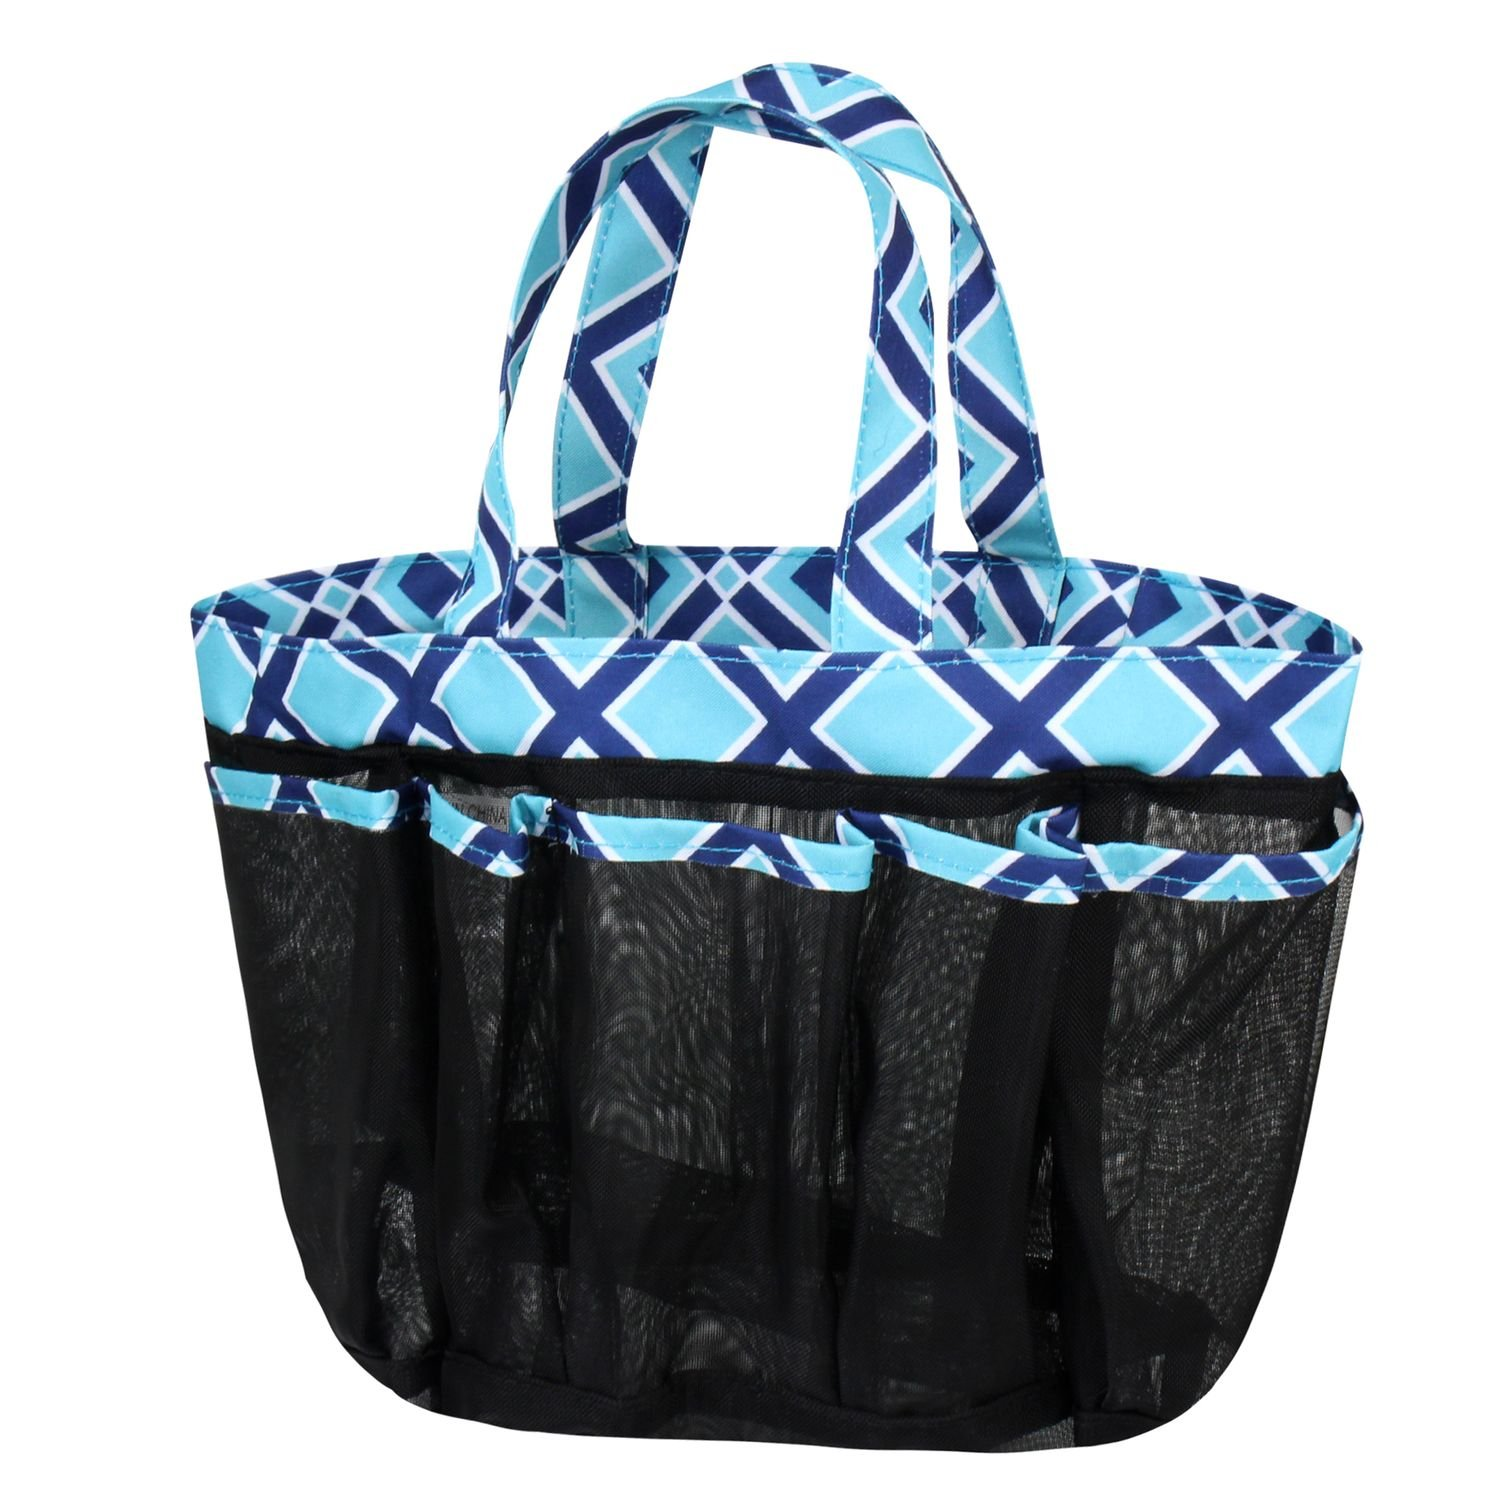 Zodaca Mesh Shower Caddie Tote Bag, Navy/Turquoise Times Square